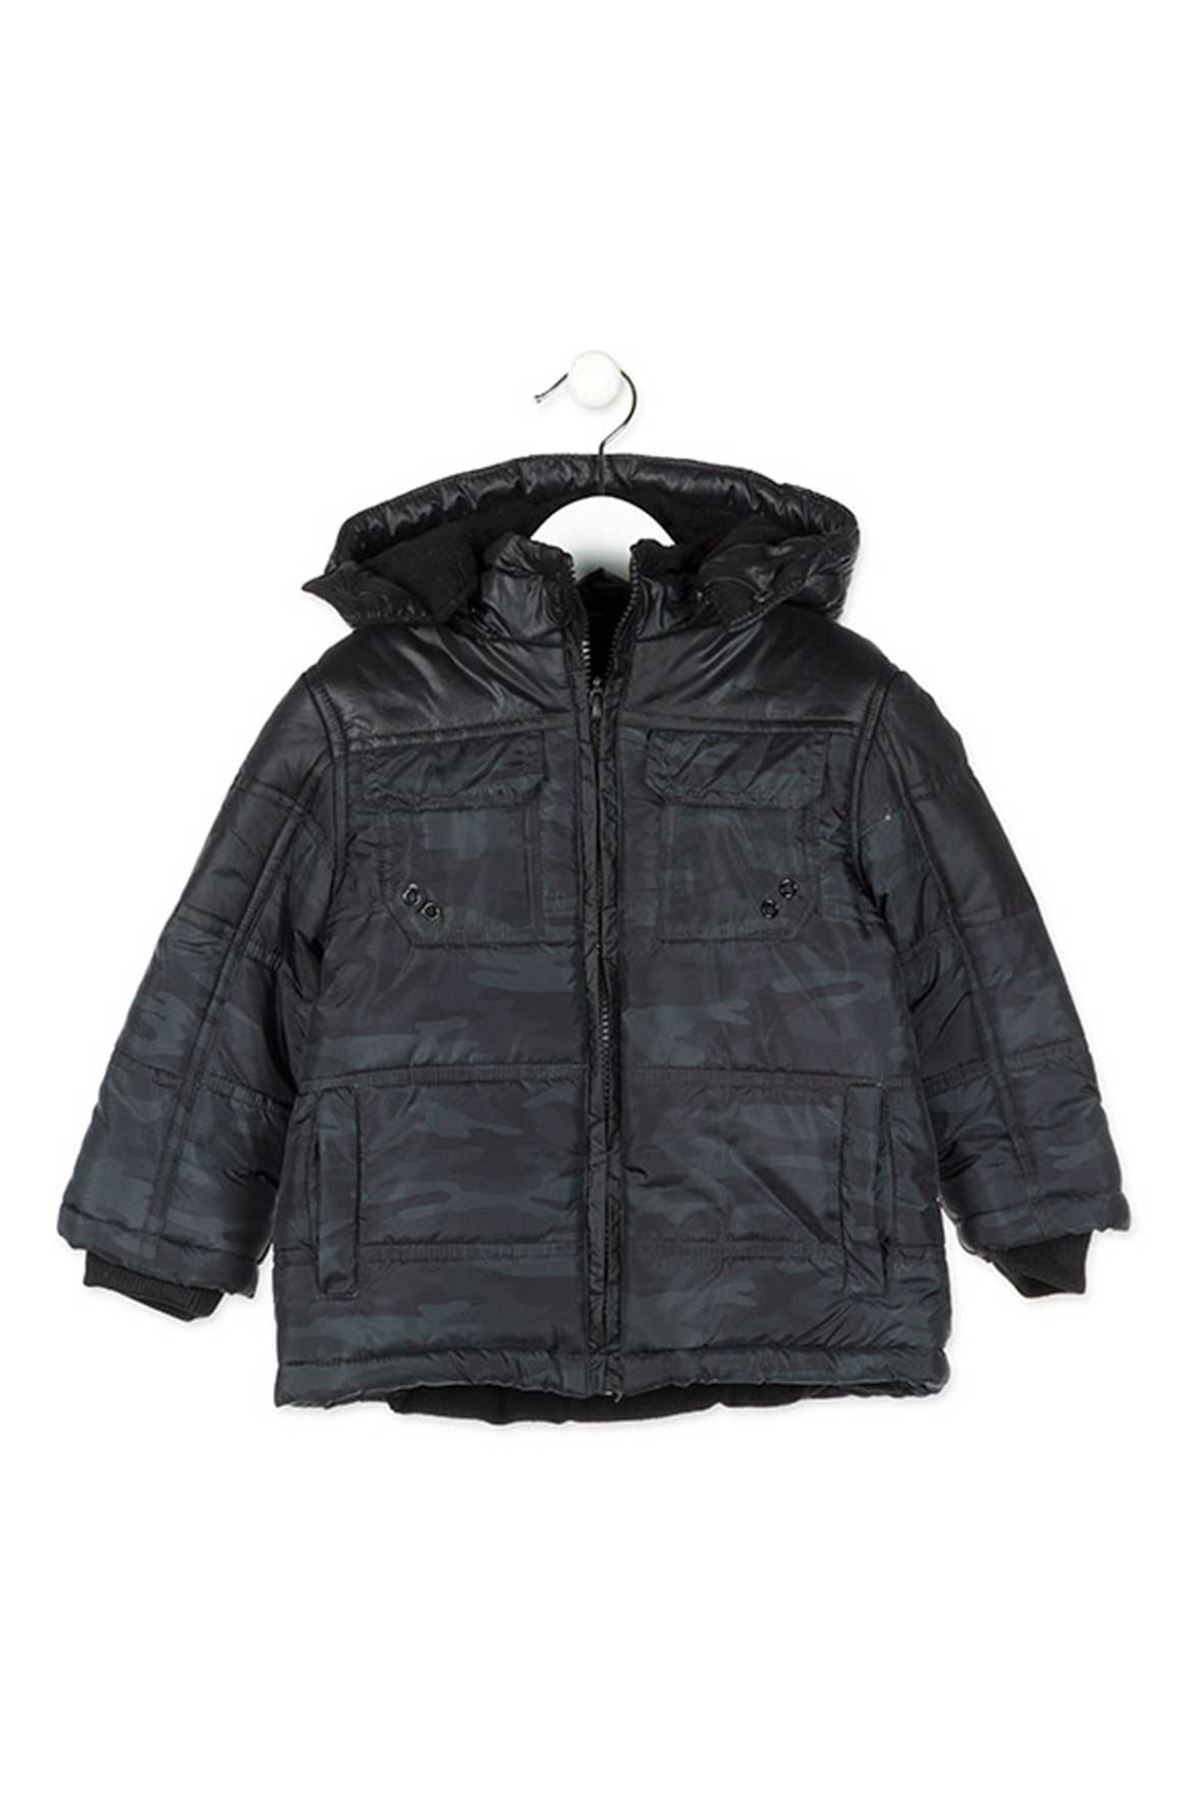 Losan Male Child Camouflage Hooded Coat 057-8252009-038